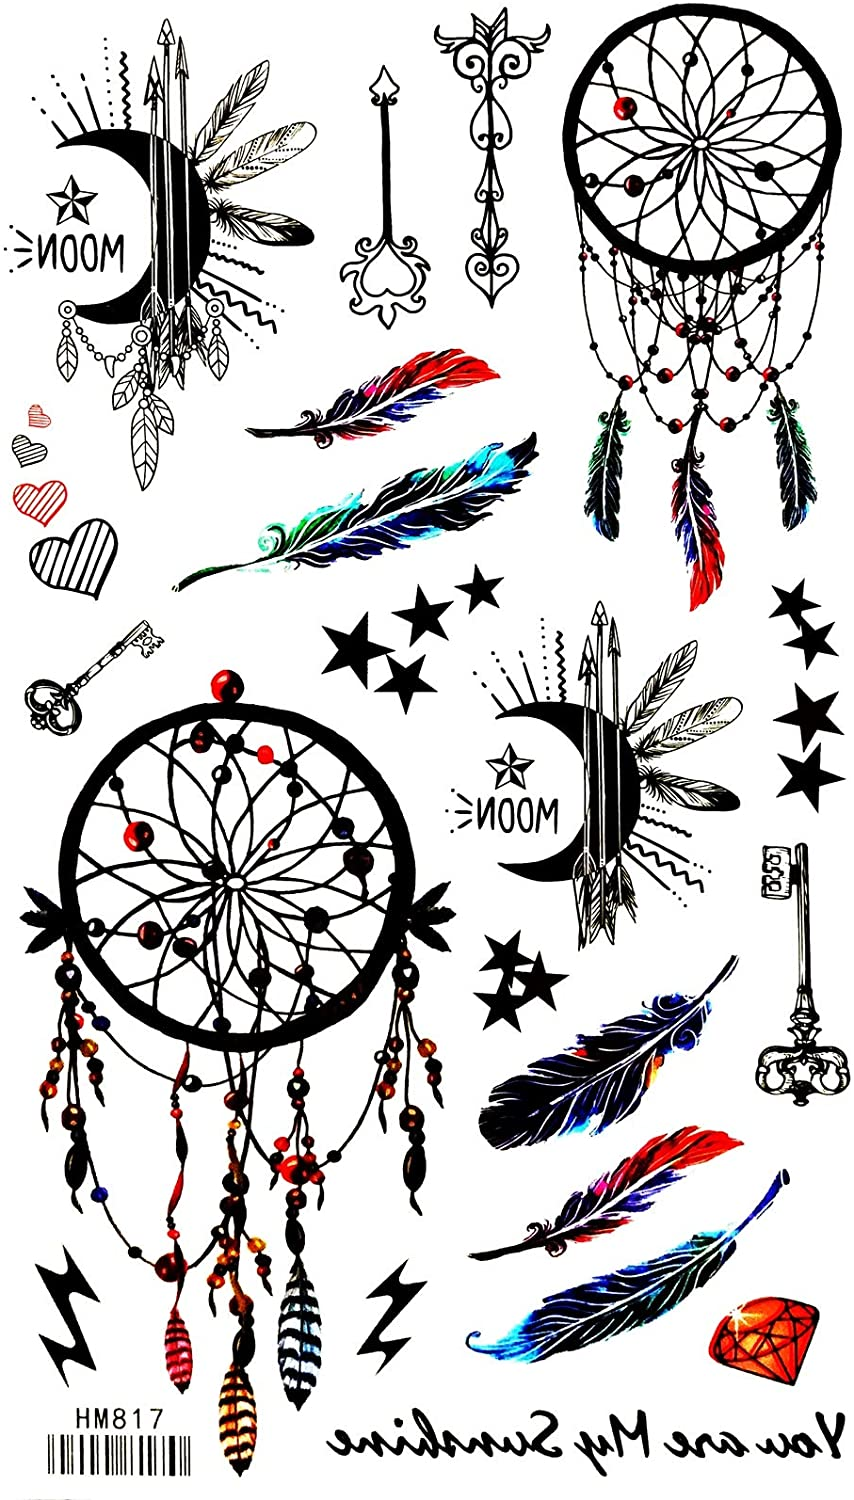 Indian Feather Cute Fantasy Cartoon 4X8 in MEGADEE Tattoo Sticker Body Arm Leg Body Art Beauty Makeup Cool Removable Waterproof Tattoo Sticker Great as Happy Gift (Tattoo Sticker 127)